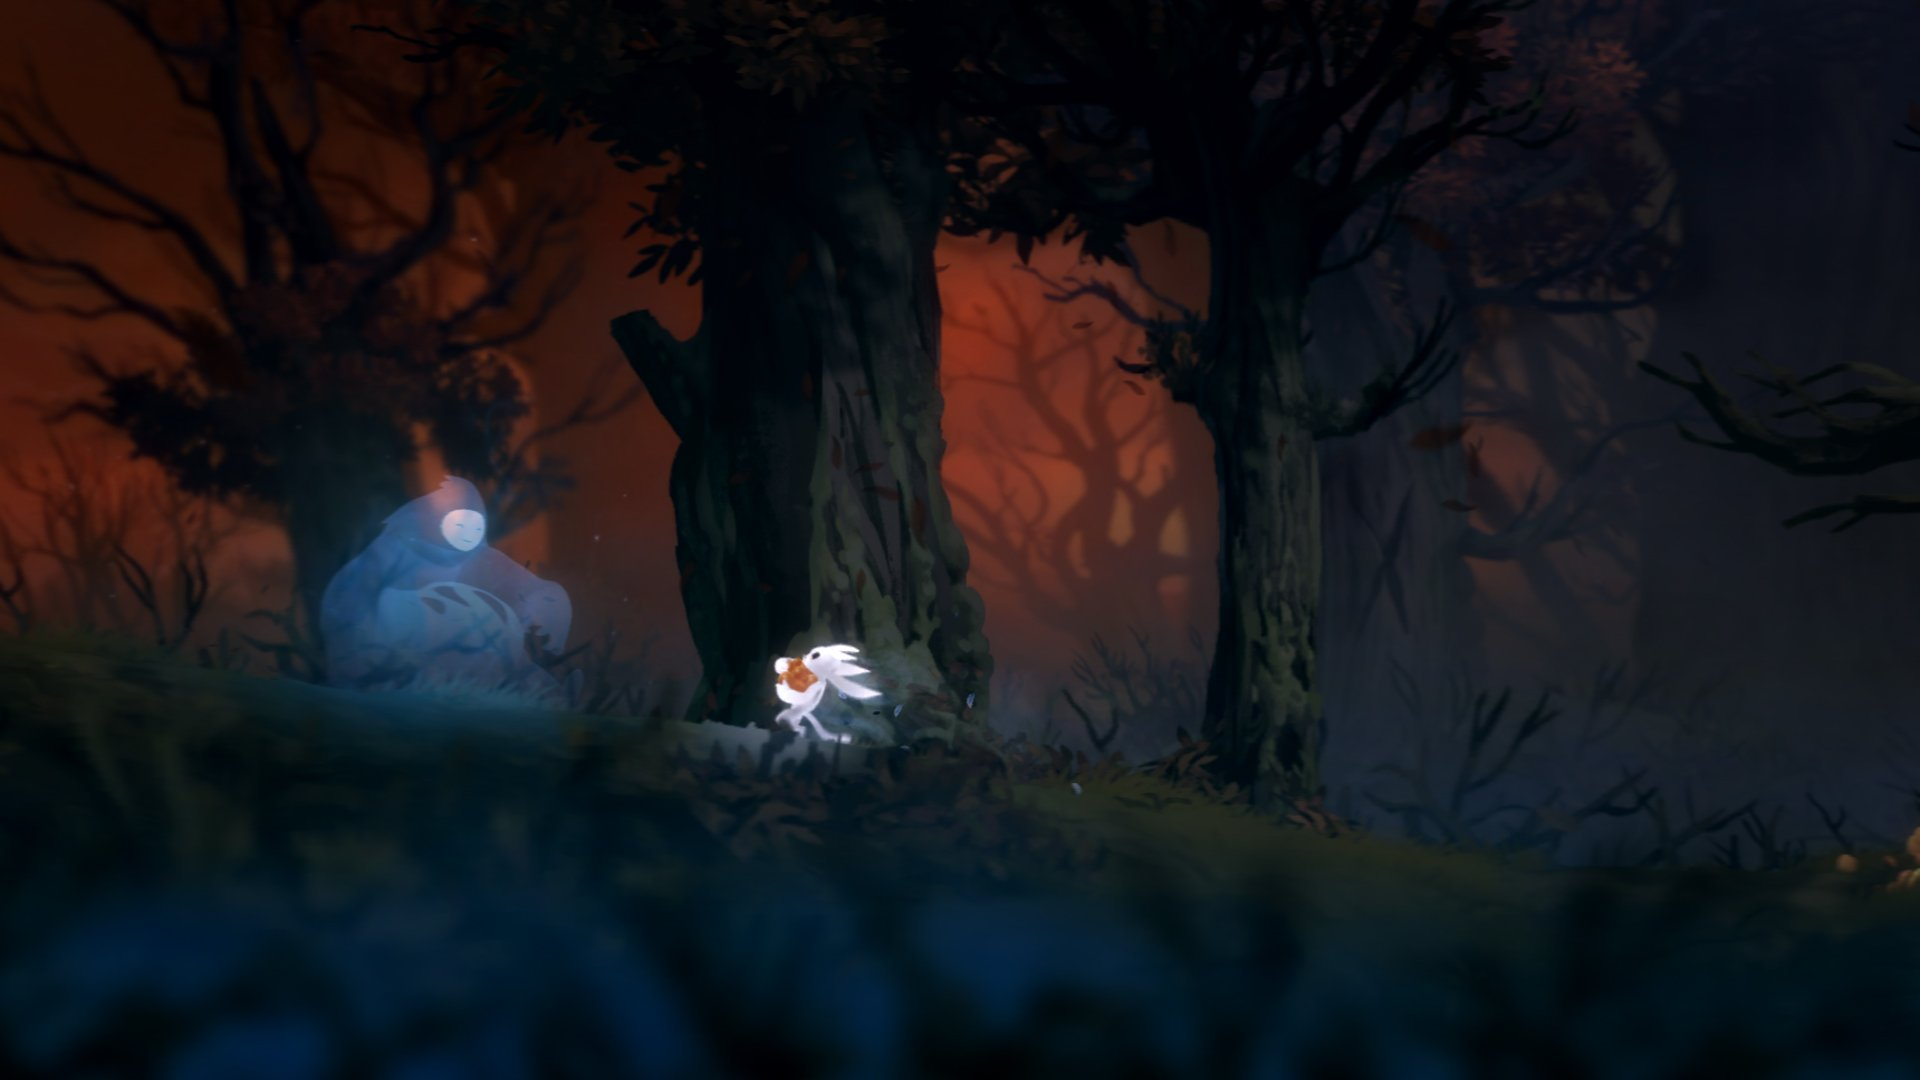 ori and the blind forest hd wallpaper #2180425 - zerochan anime